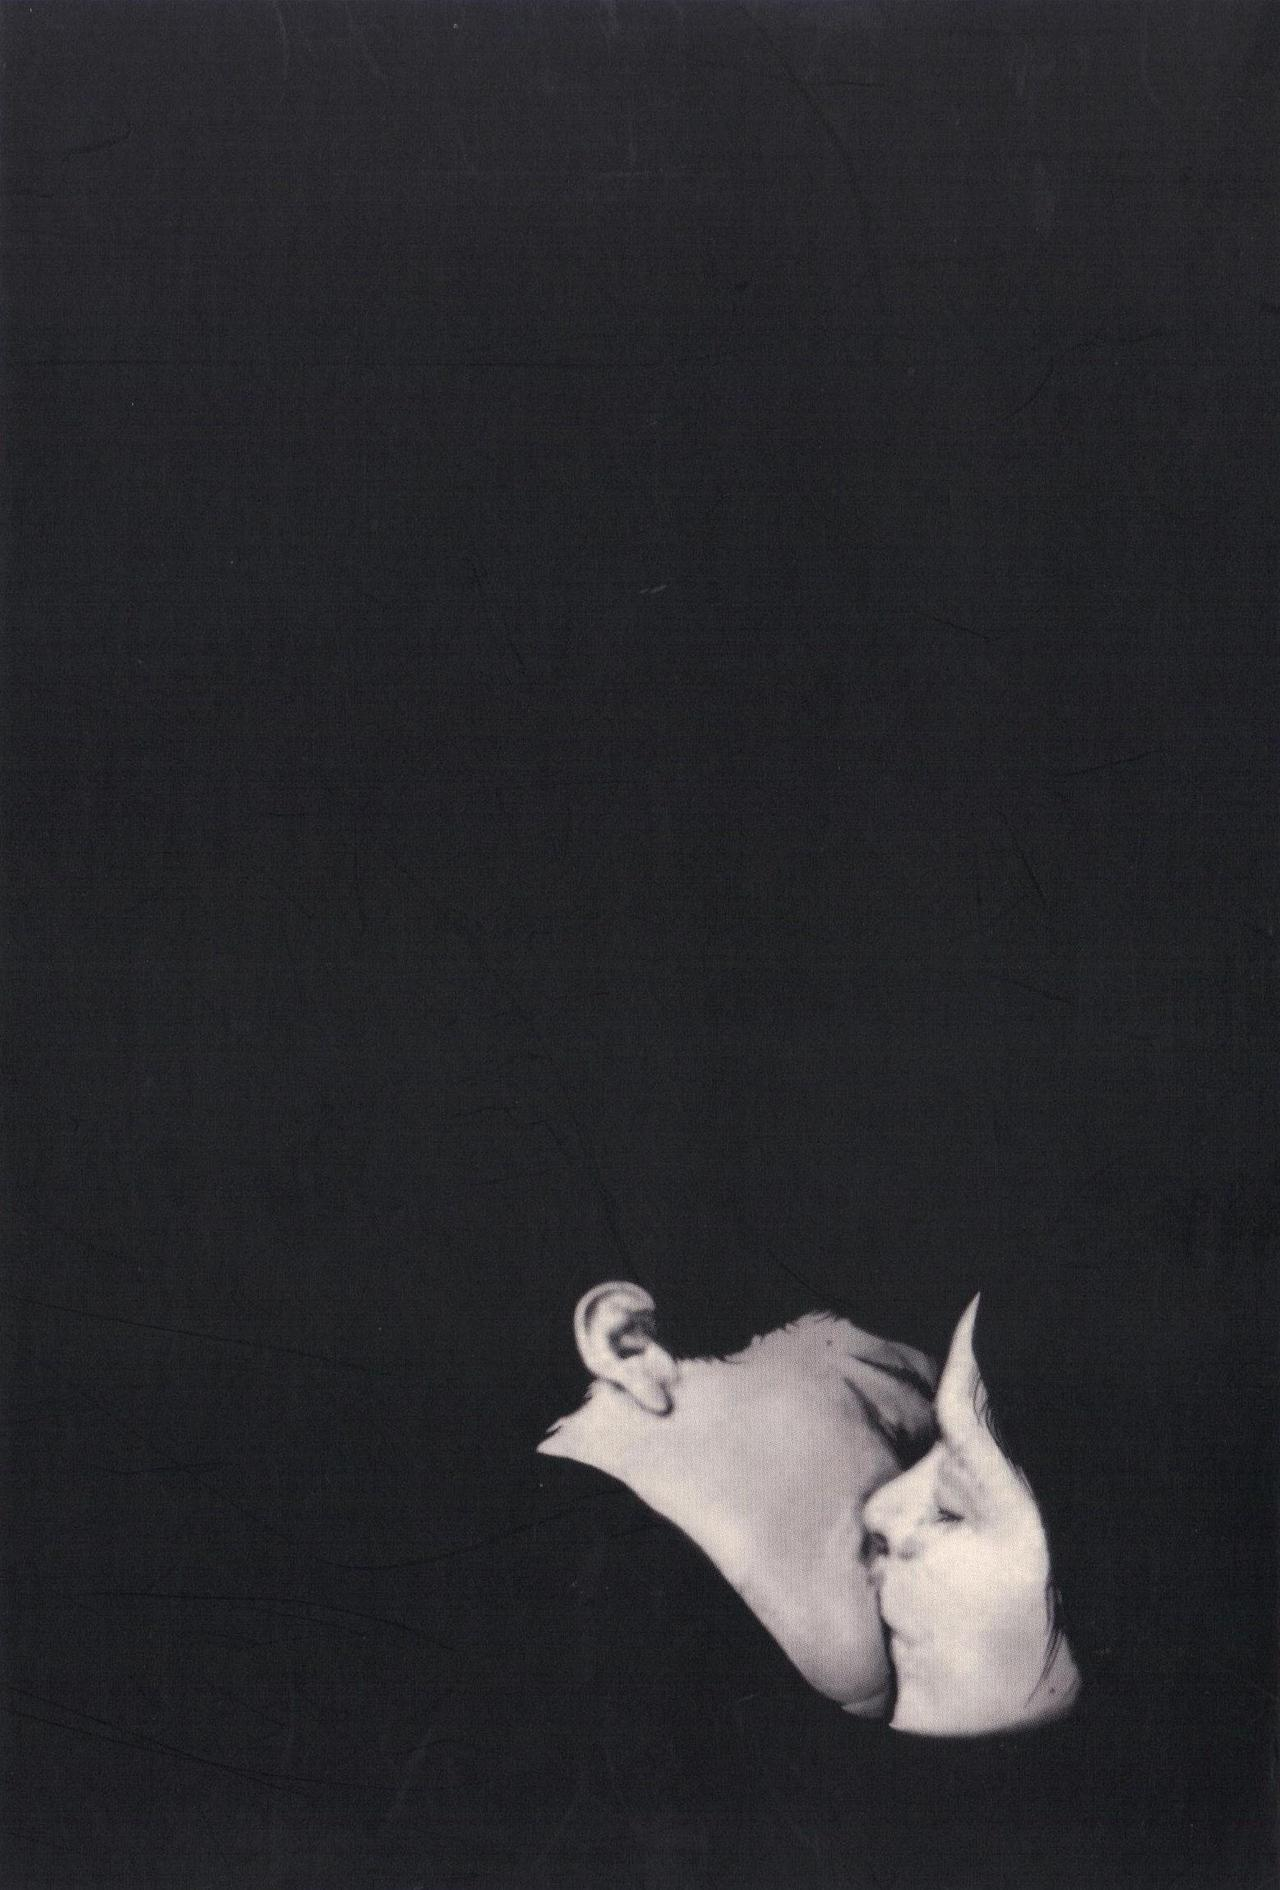 John Stezaker - Untitled, 1976. … from Love and Desire, William A. Ewing, Chronicle Books, 1999.